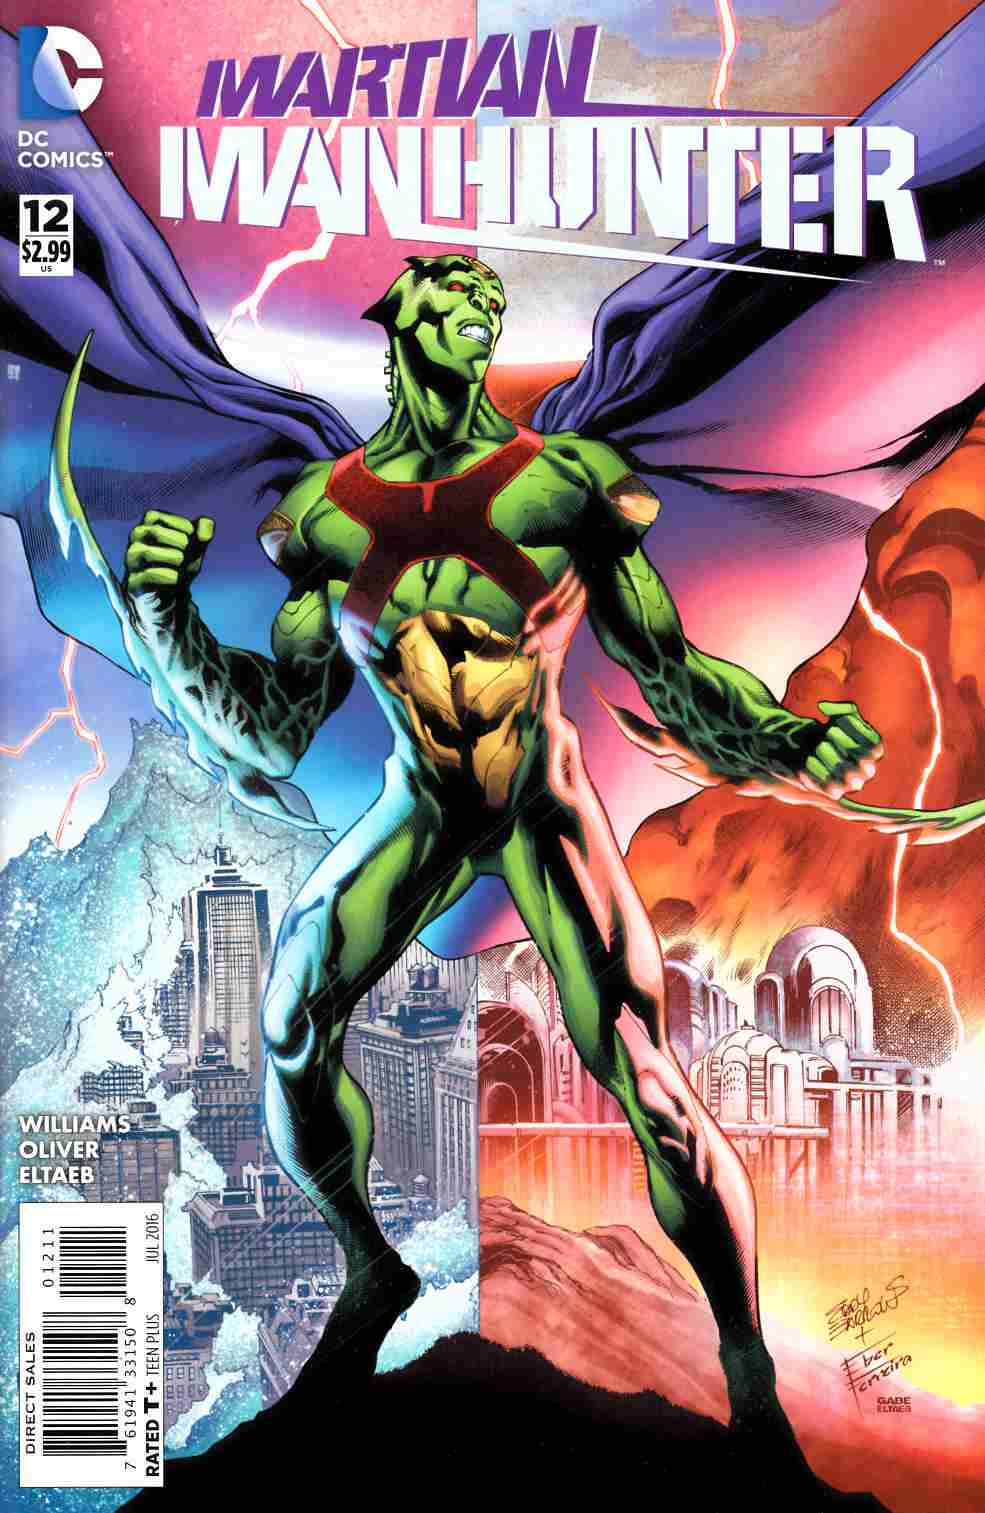 Martian Manhunter #12 [DC Comic] THUMBNAIL